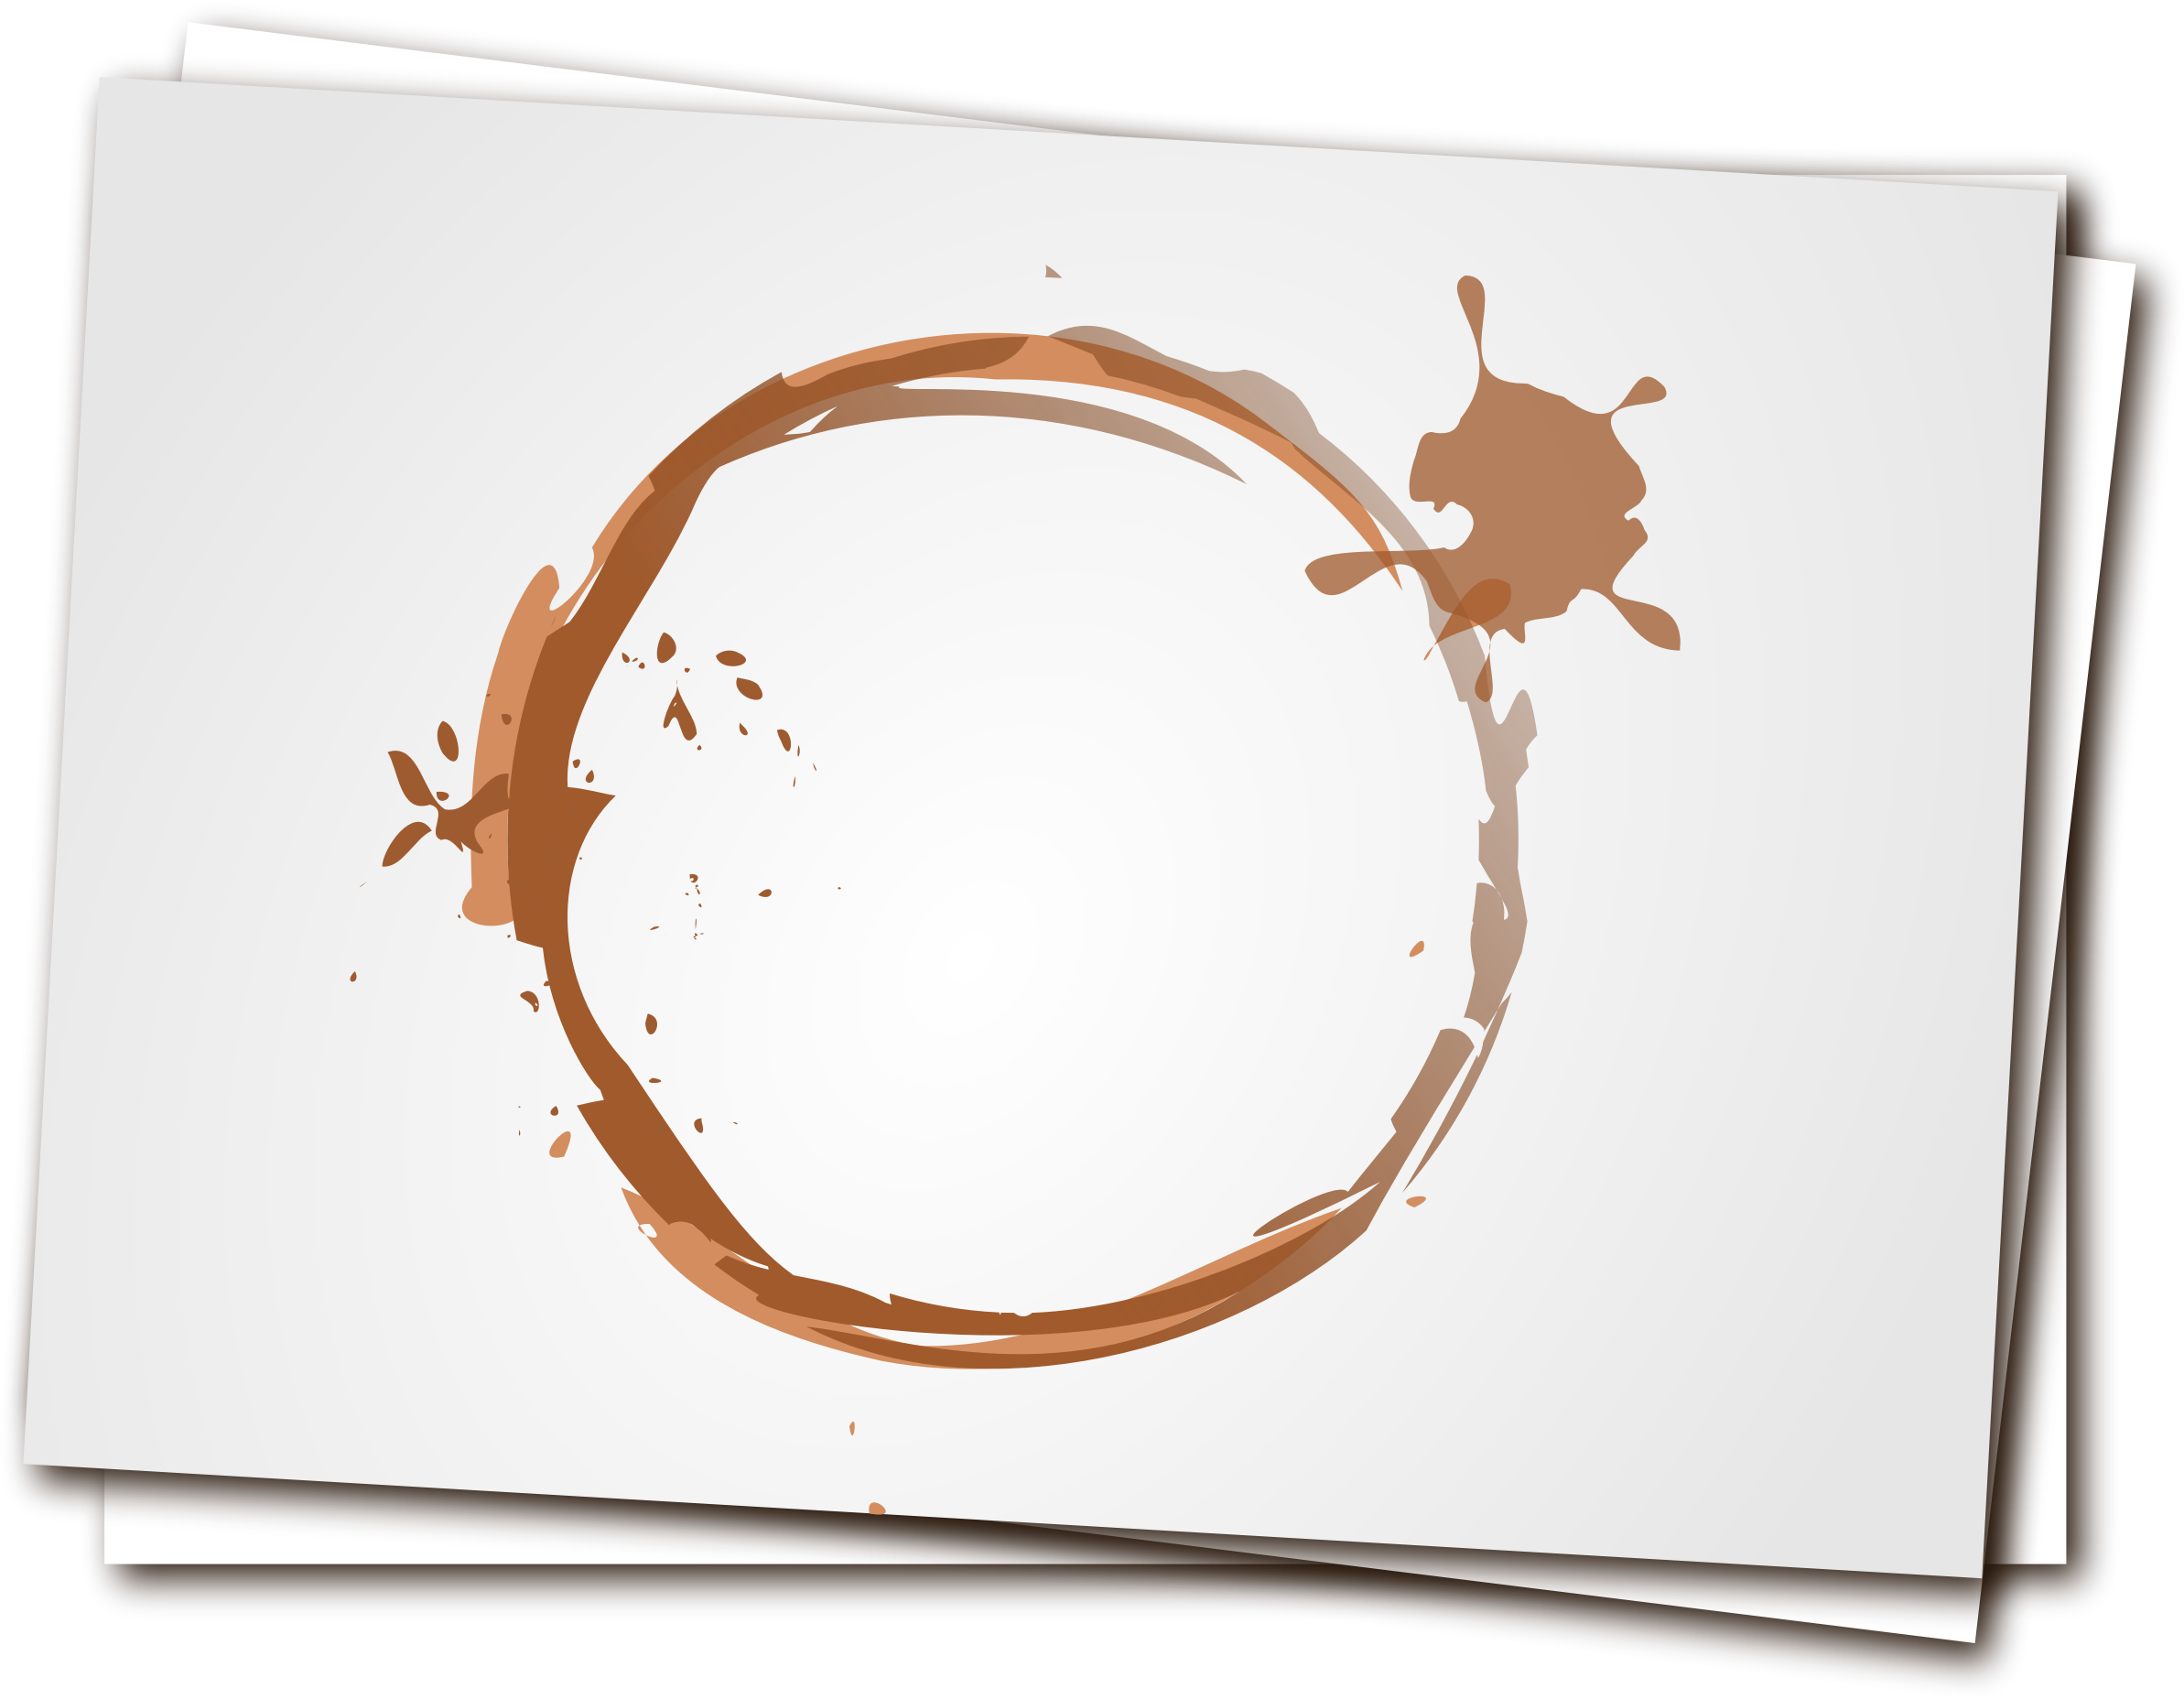 Coffee stain by liftarn